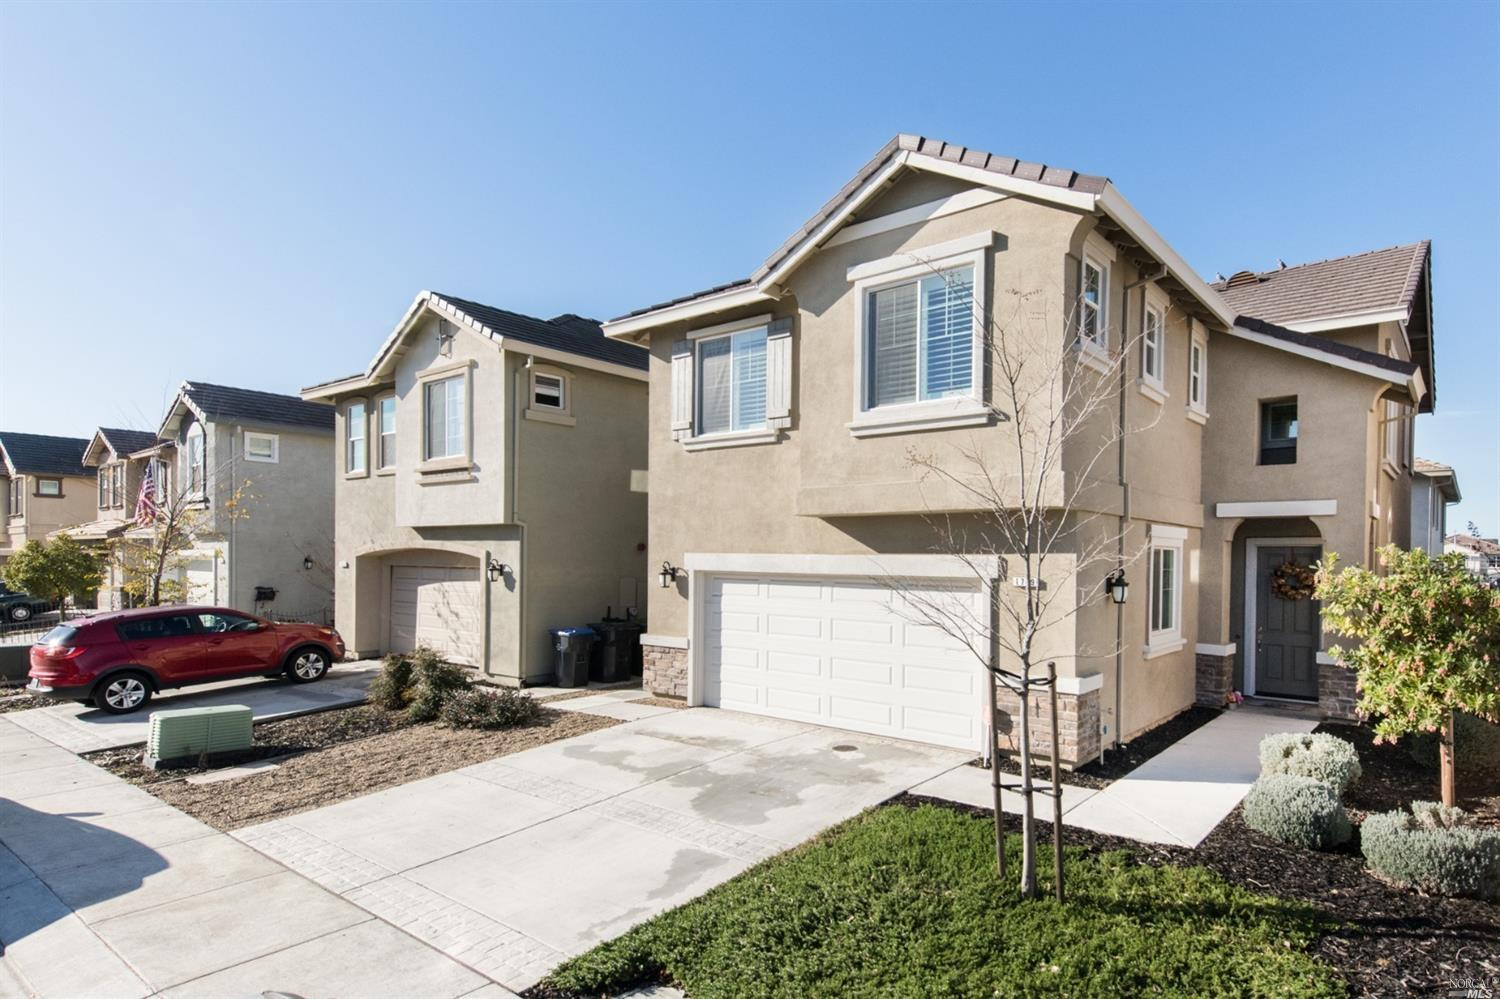 This Suisun 'Jubilee' Home is JUST Like NEW AND Waiting For YOU! That's Right! This 3 year old 2074